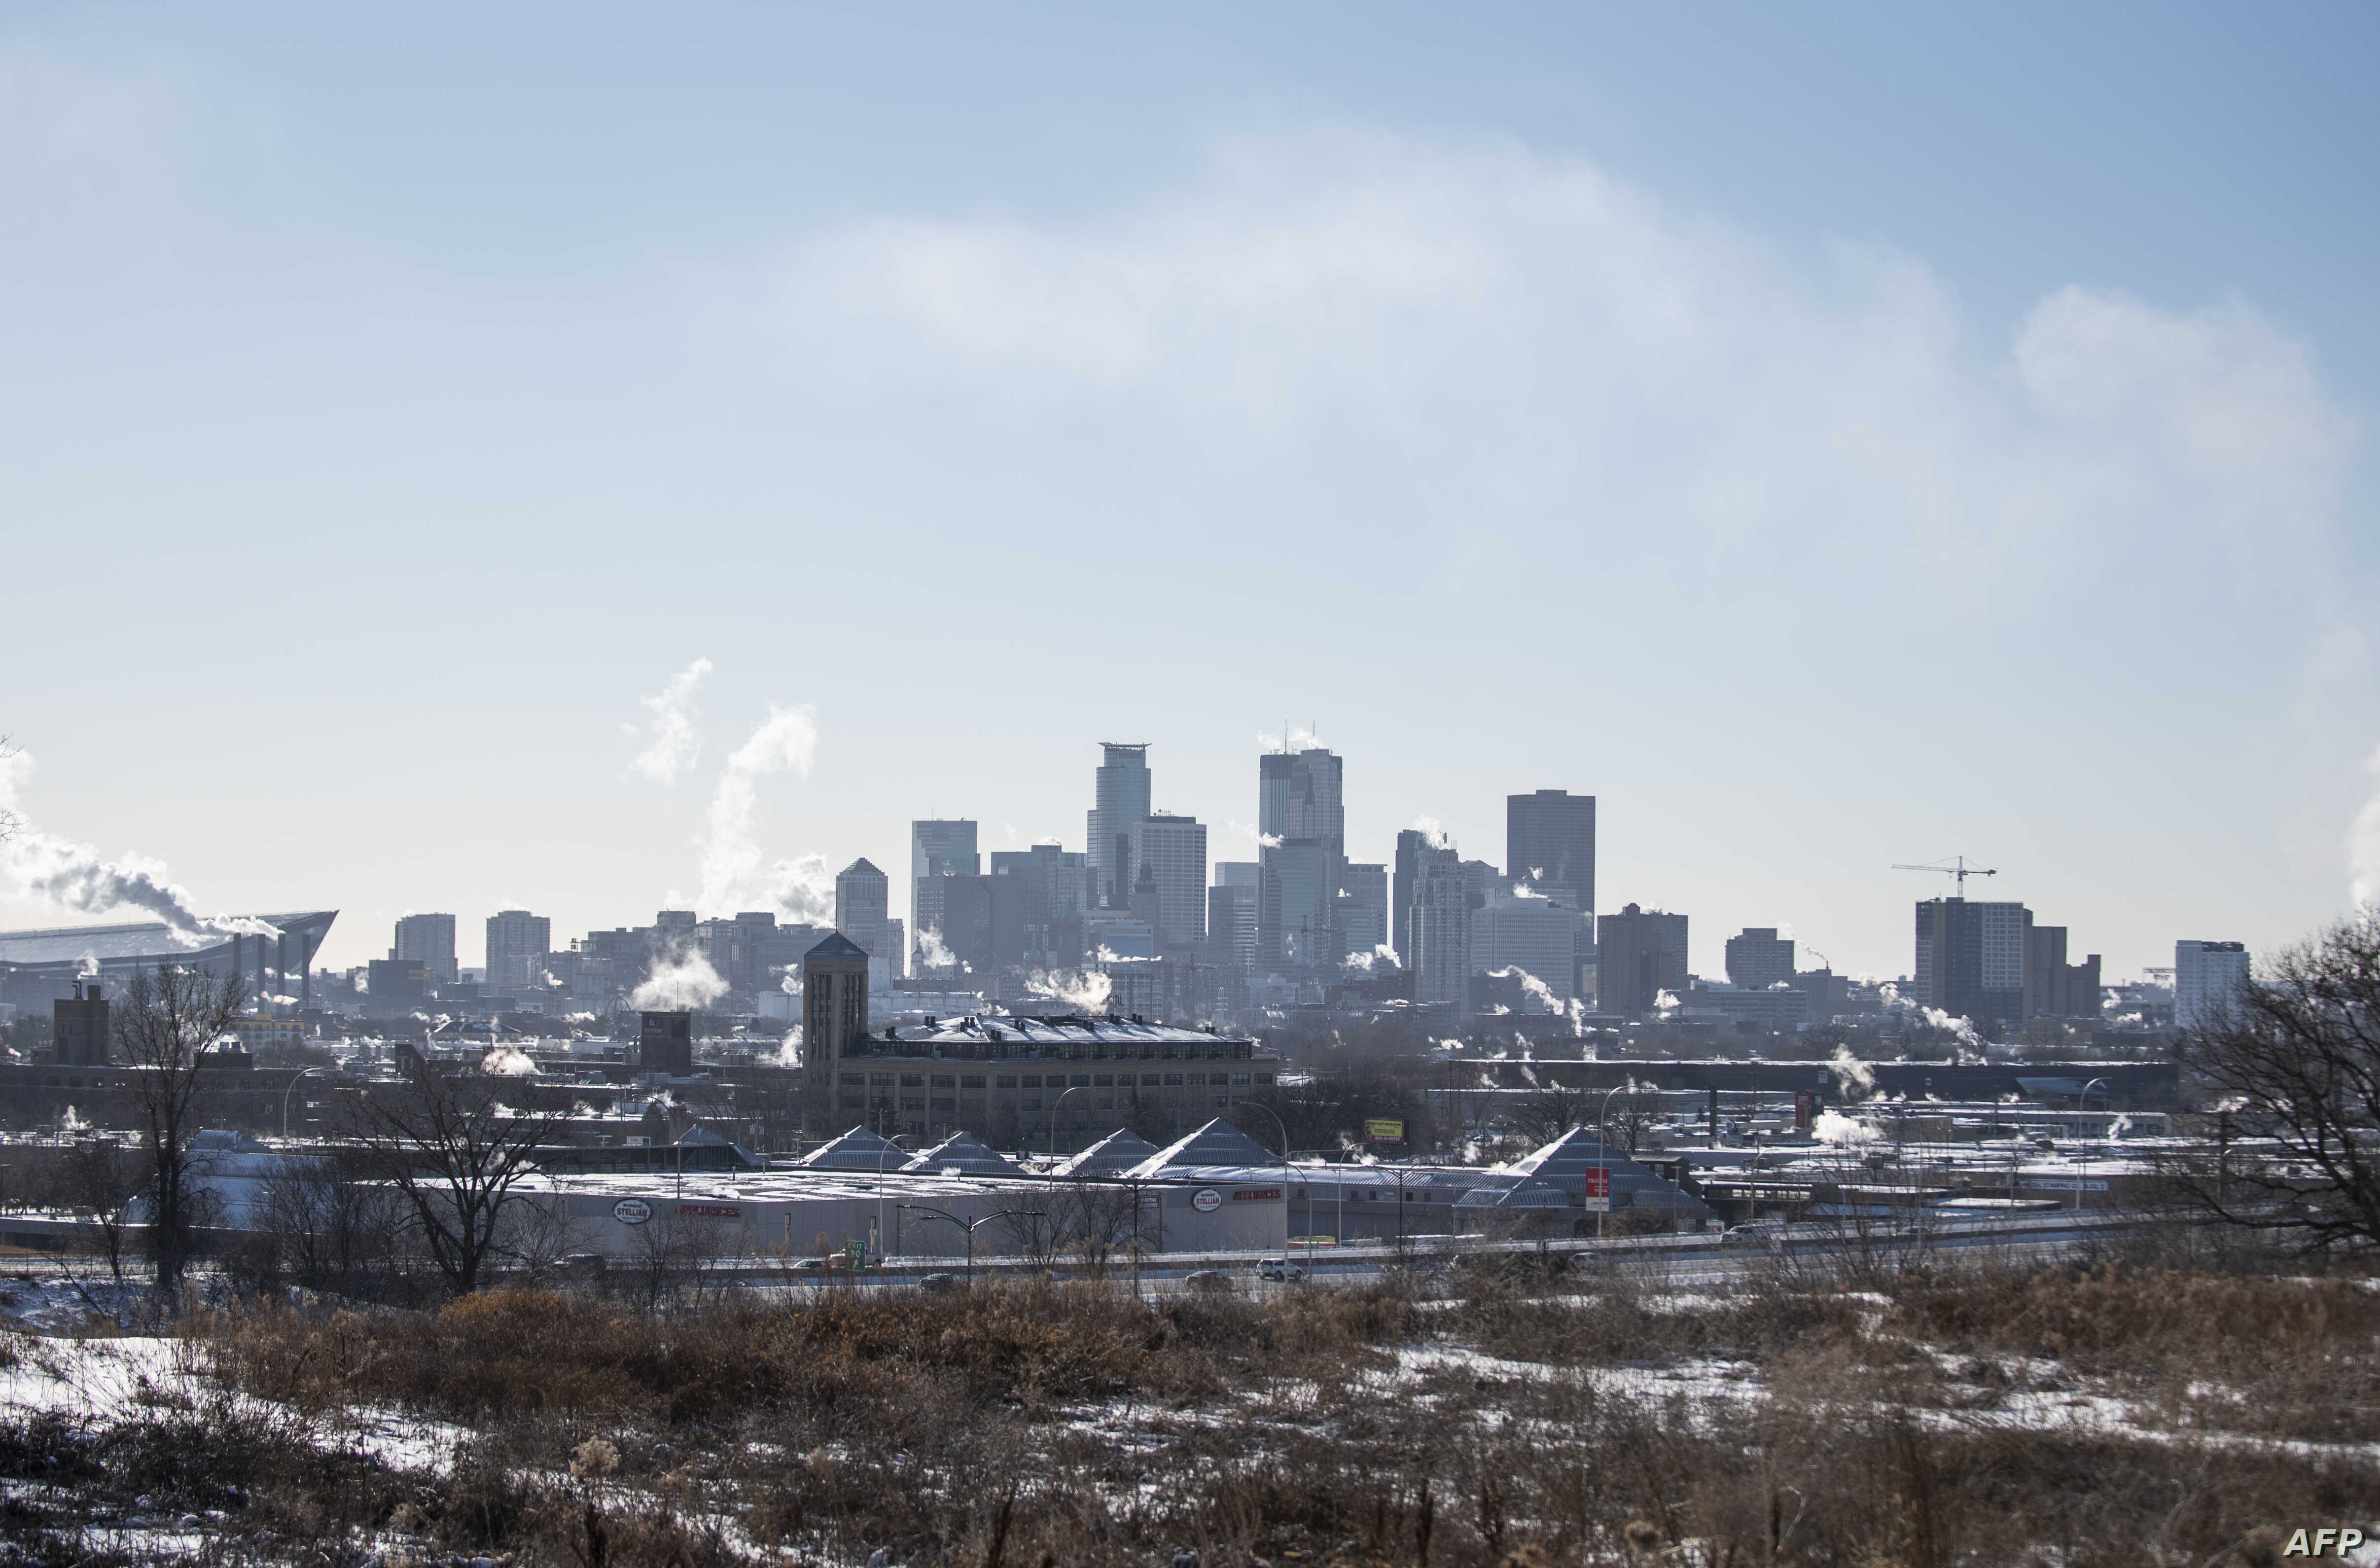 A view of the city skyline on Jan. 30, 2019 in Minneapolis, Minnesota.